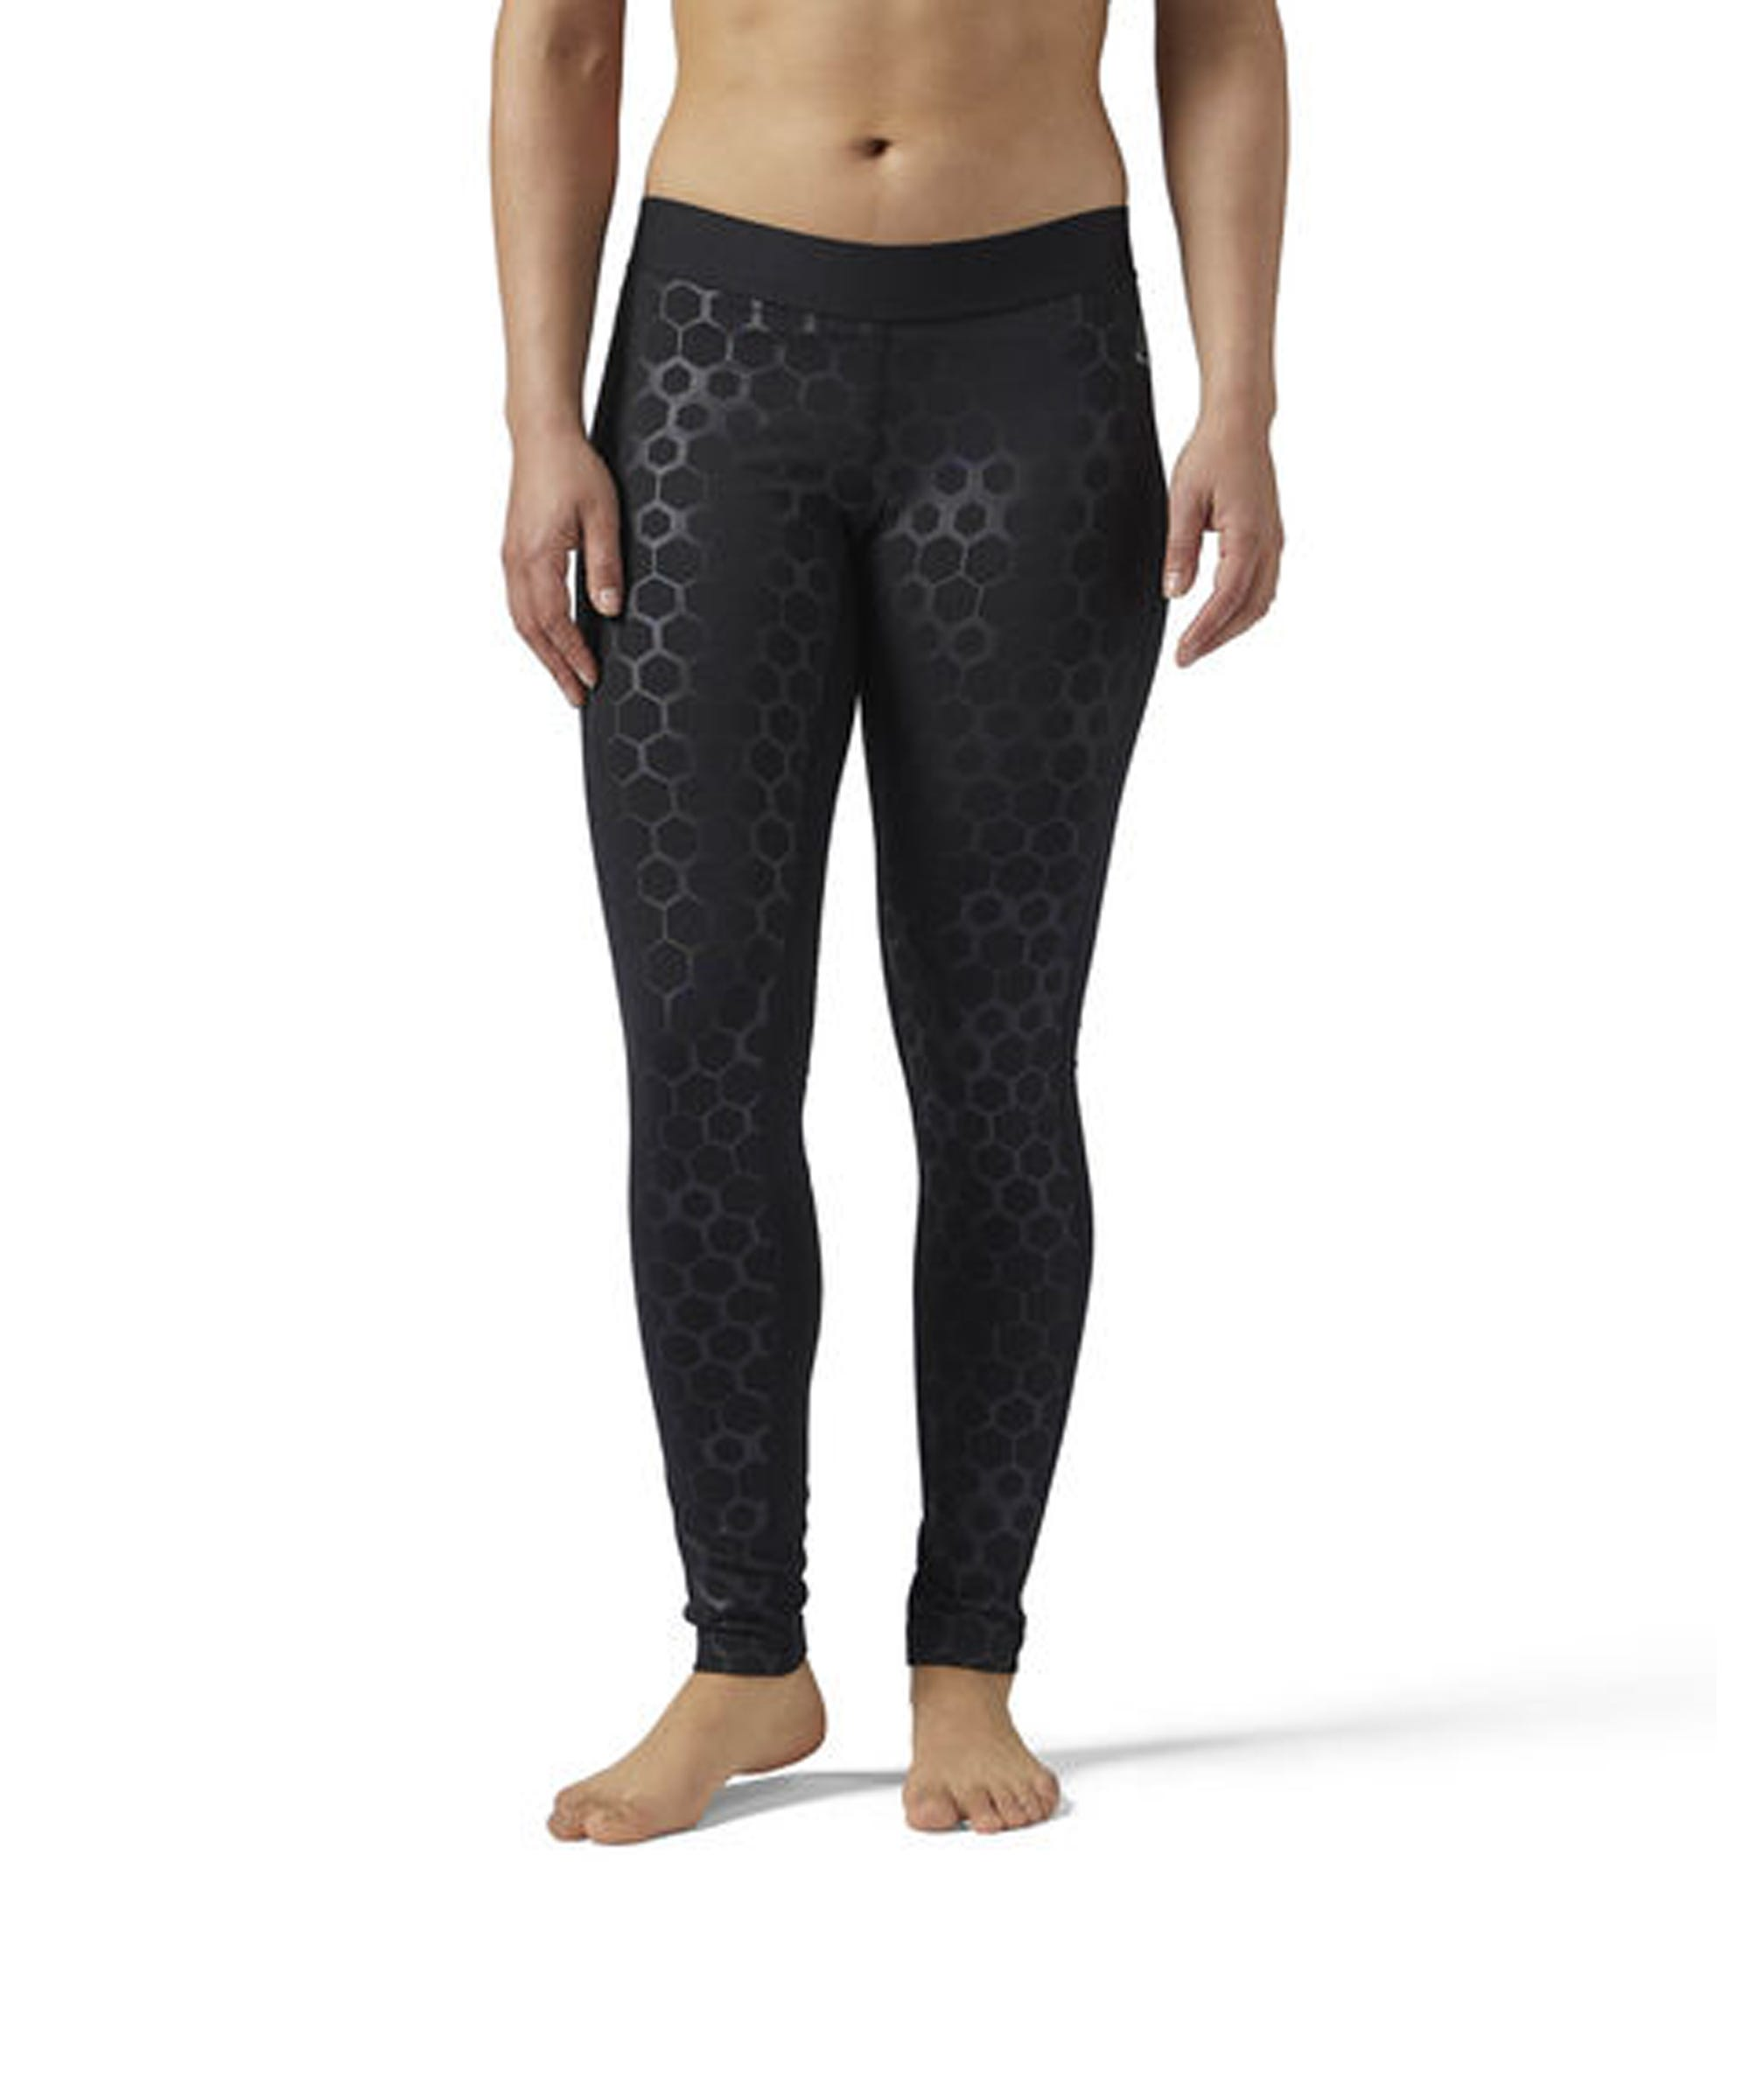 15321a998ccdb Best Warm Leggings For Winter Workouts Clothes